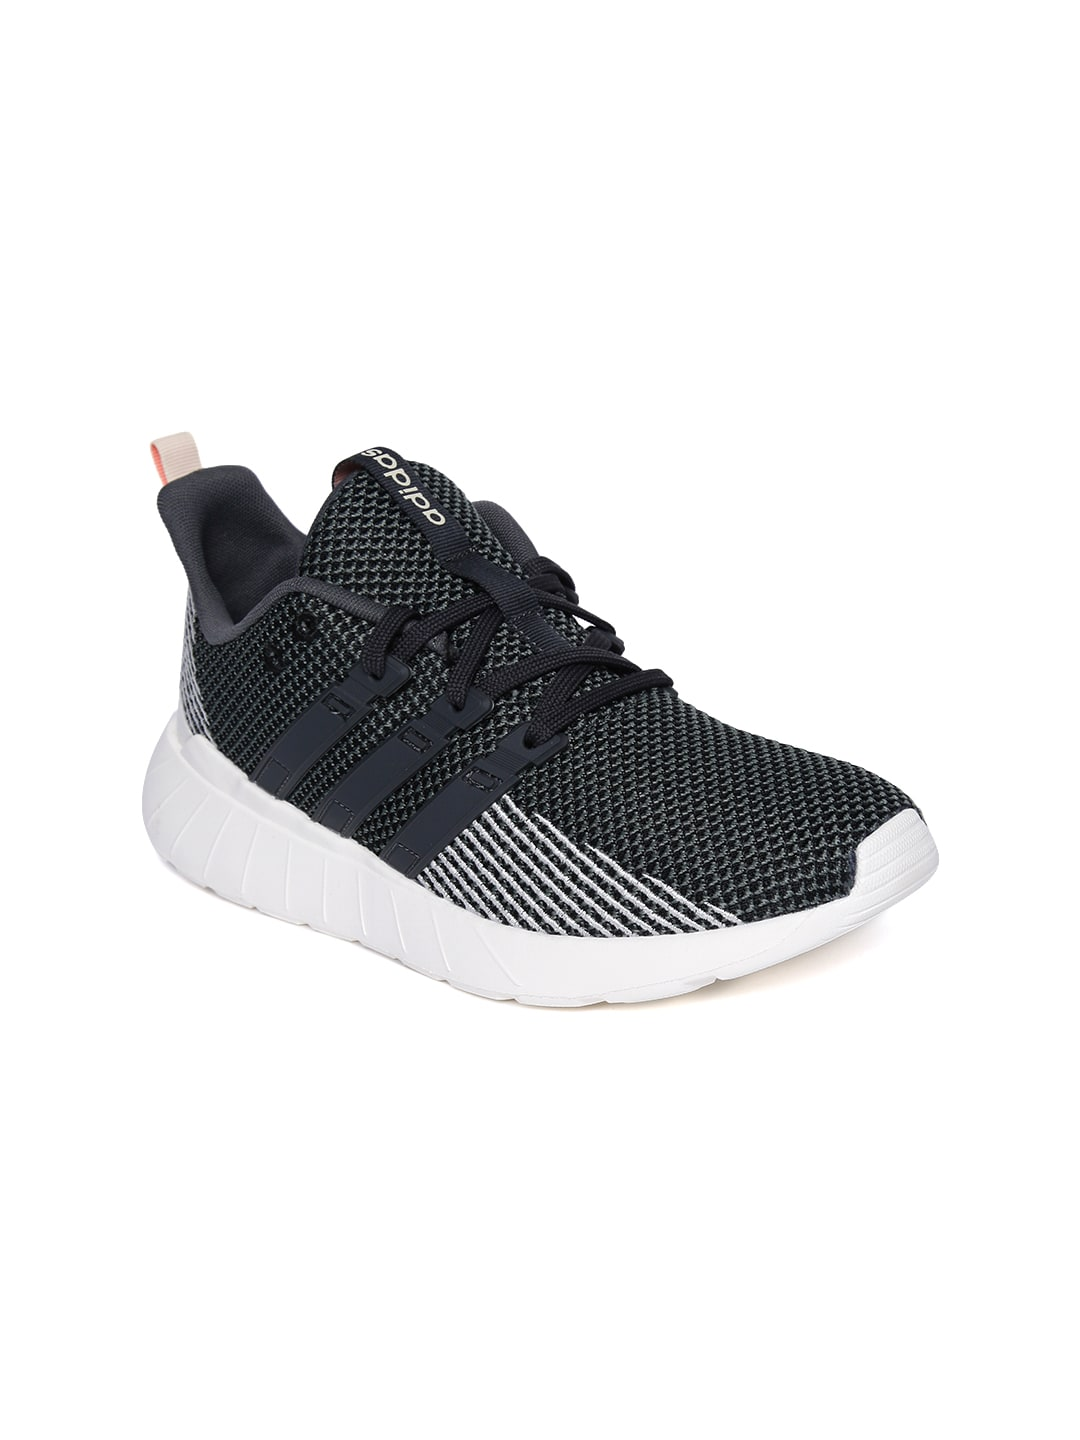 841cbf18a75b7 Women s Adidas Shoes - Buy Adidas Shoes for Women Online in India